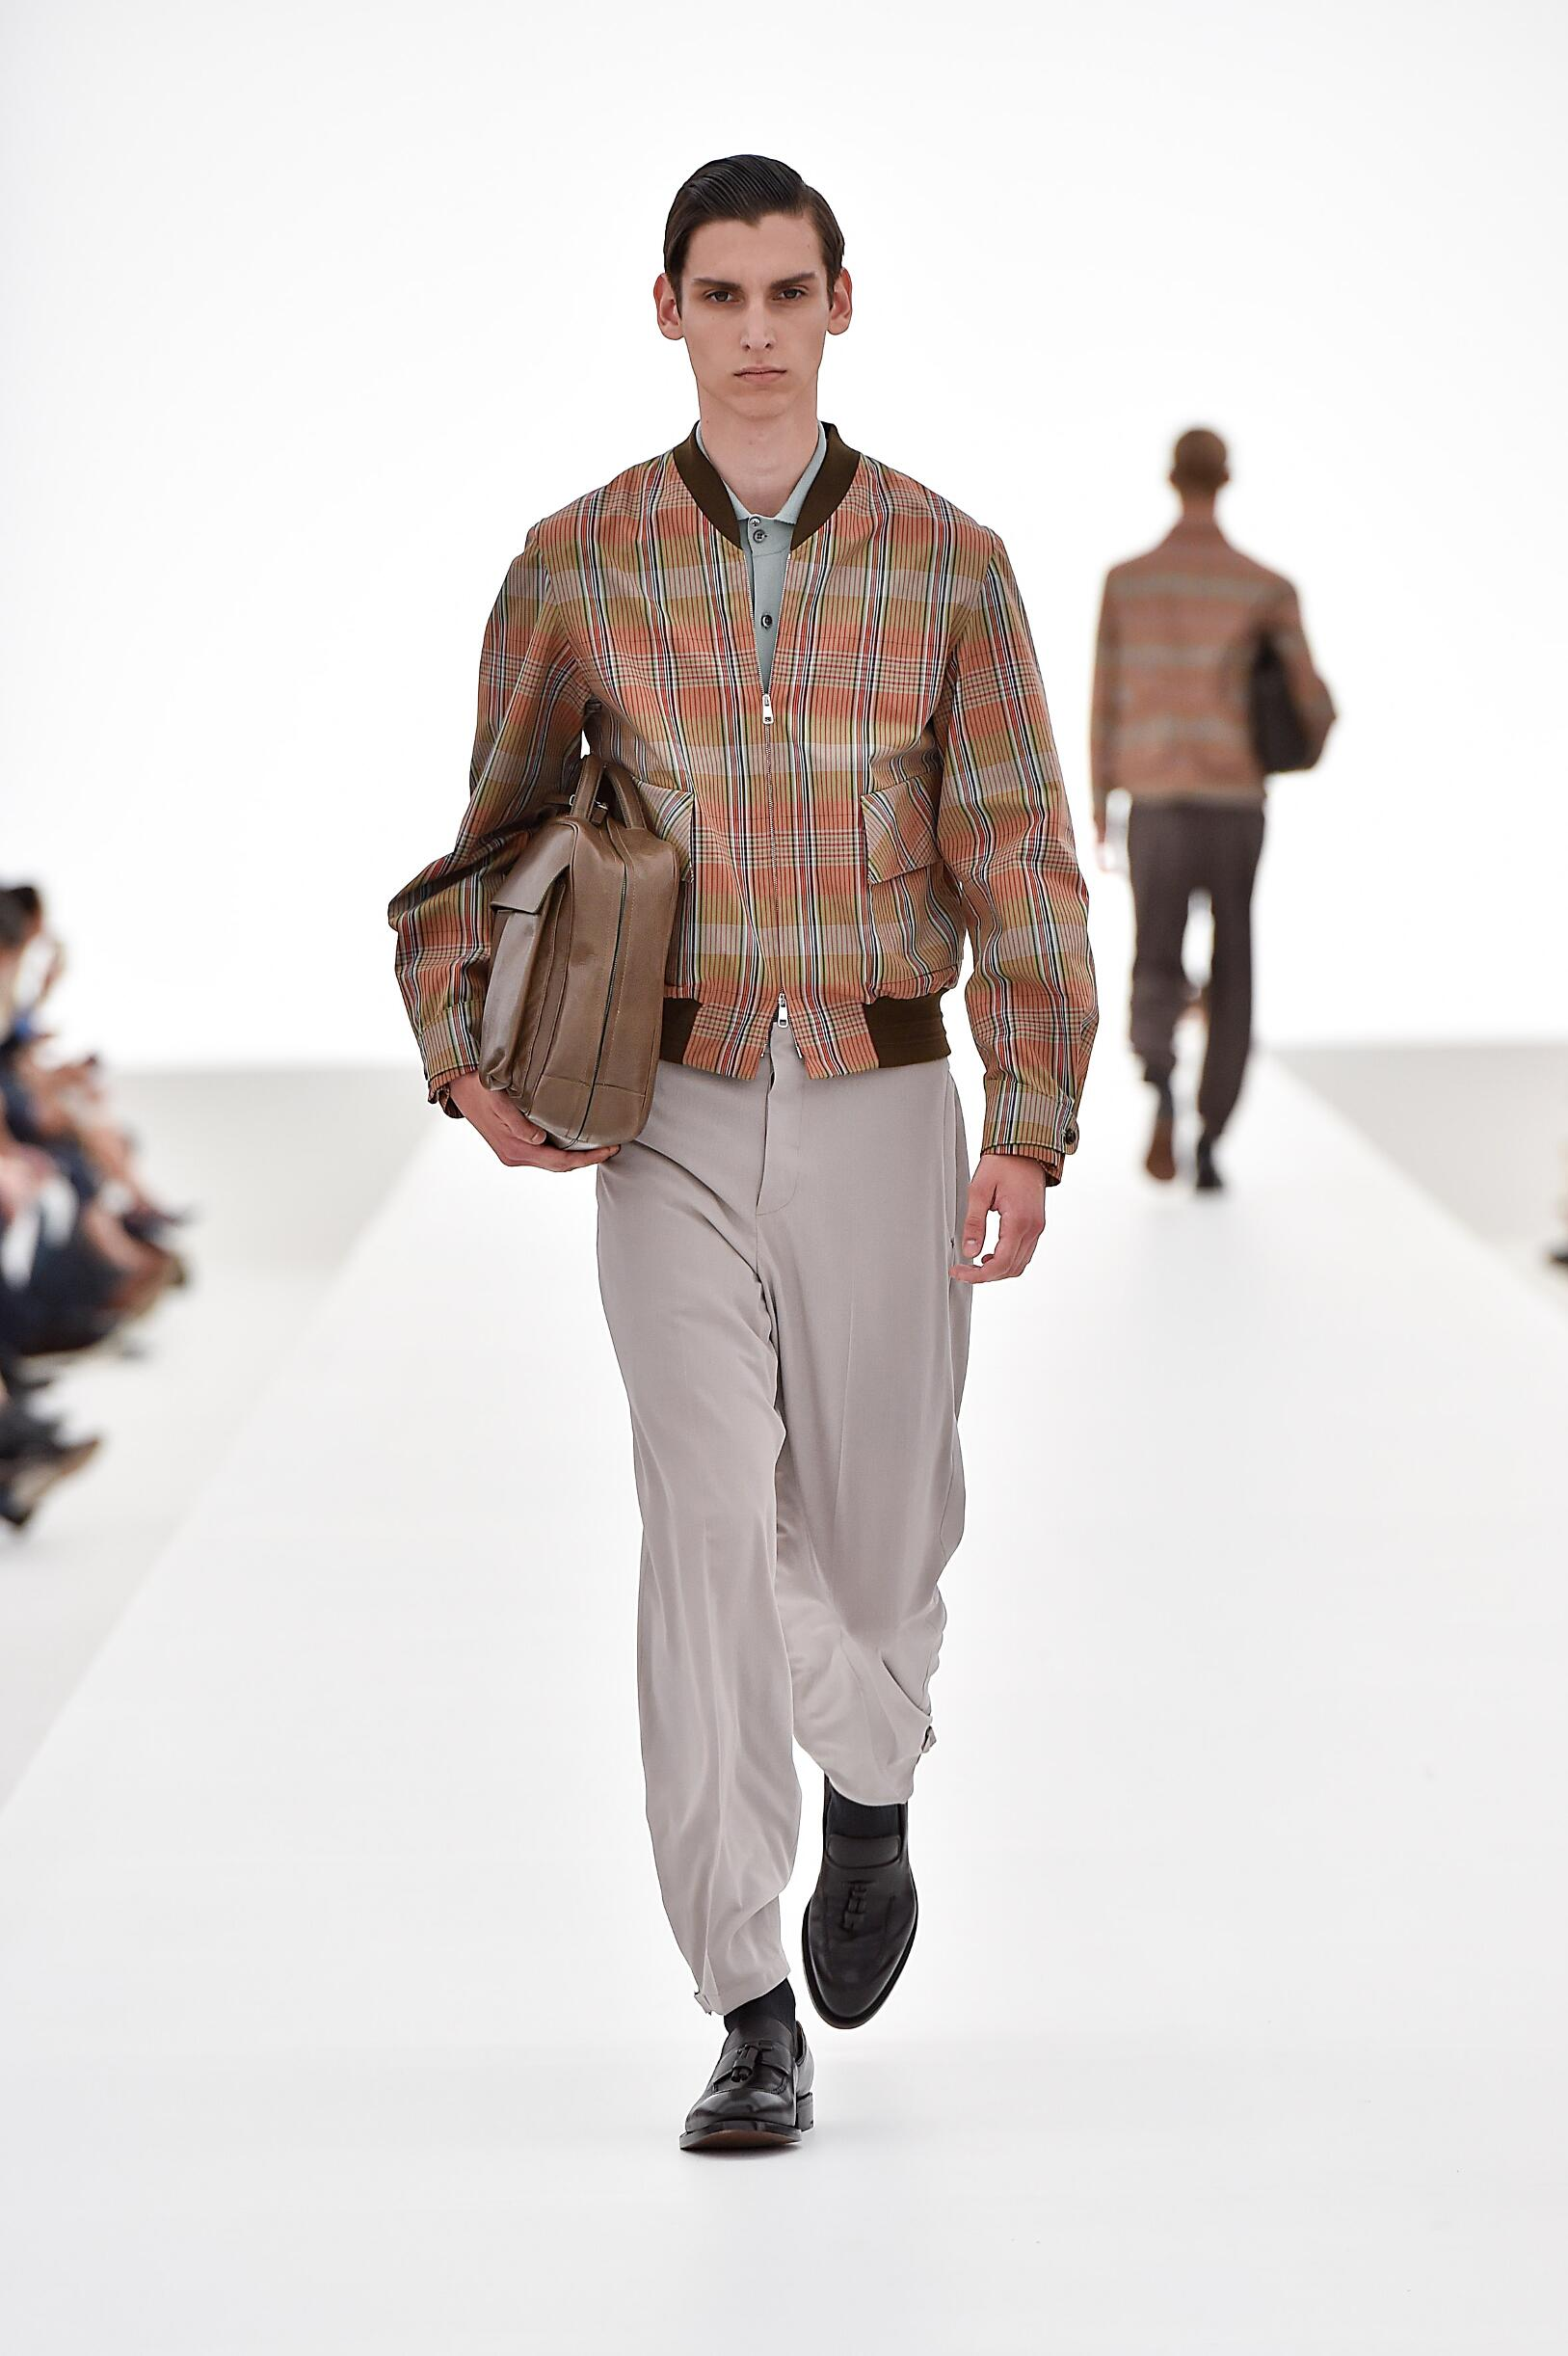 Spring Ermenegildo Zegna Couture Collection Fashion Men Model